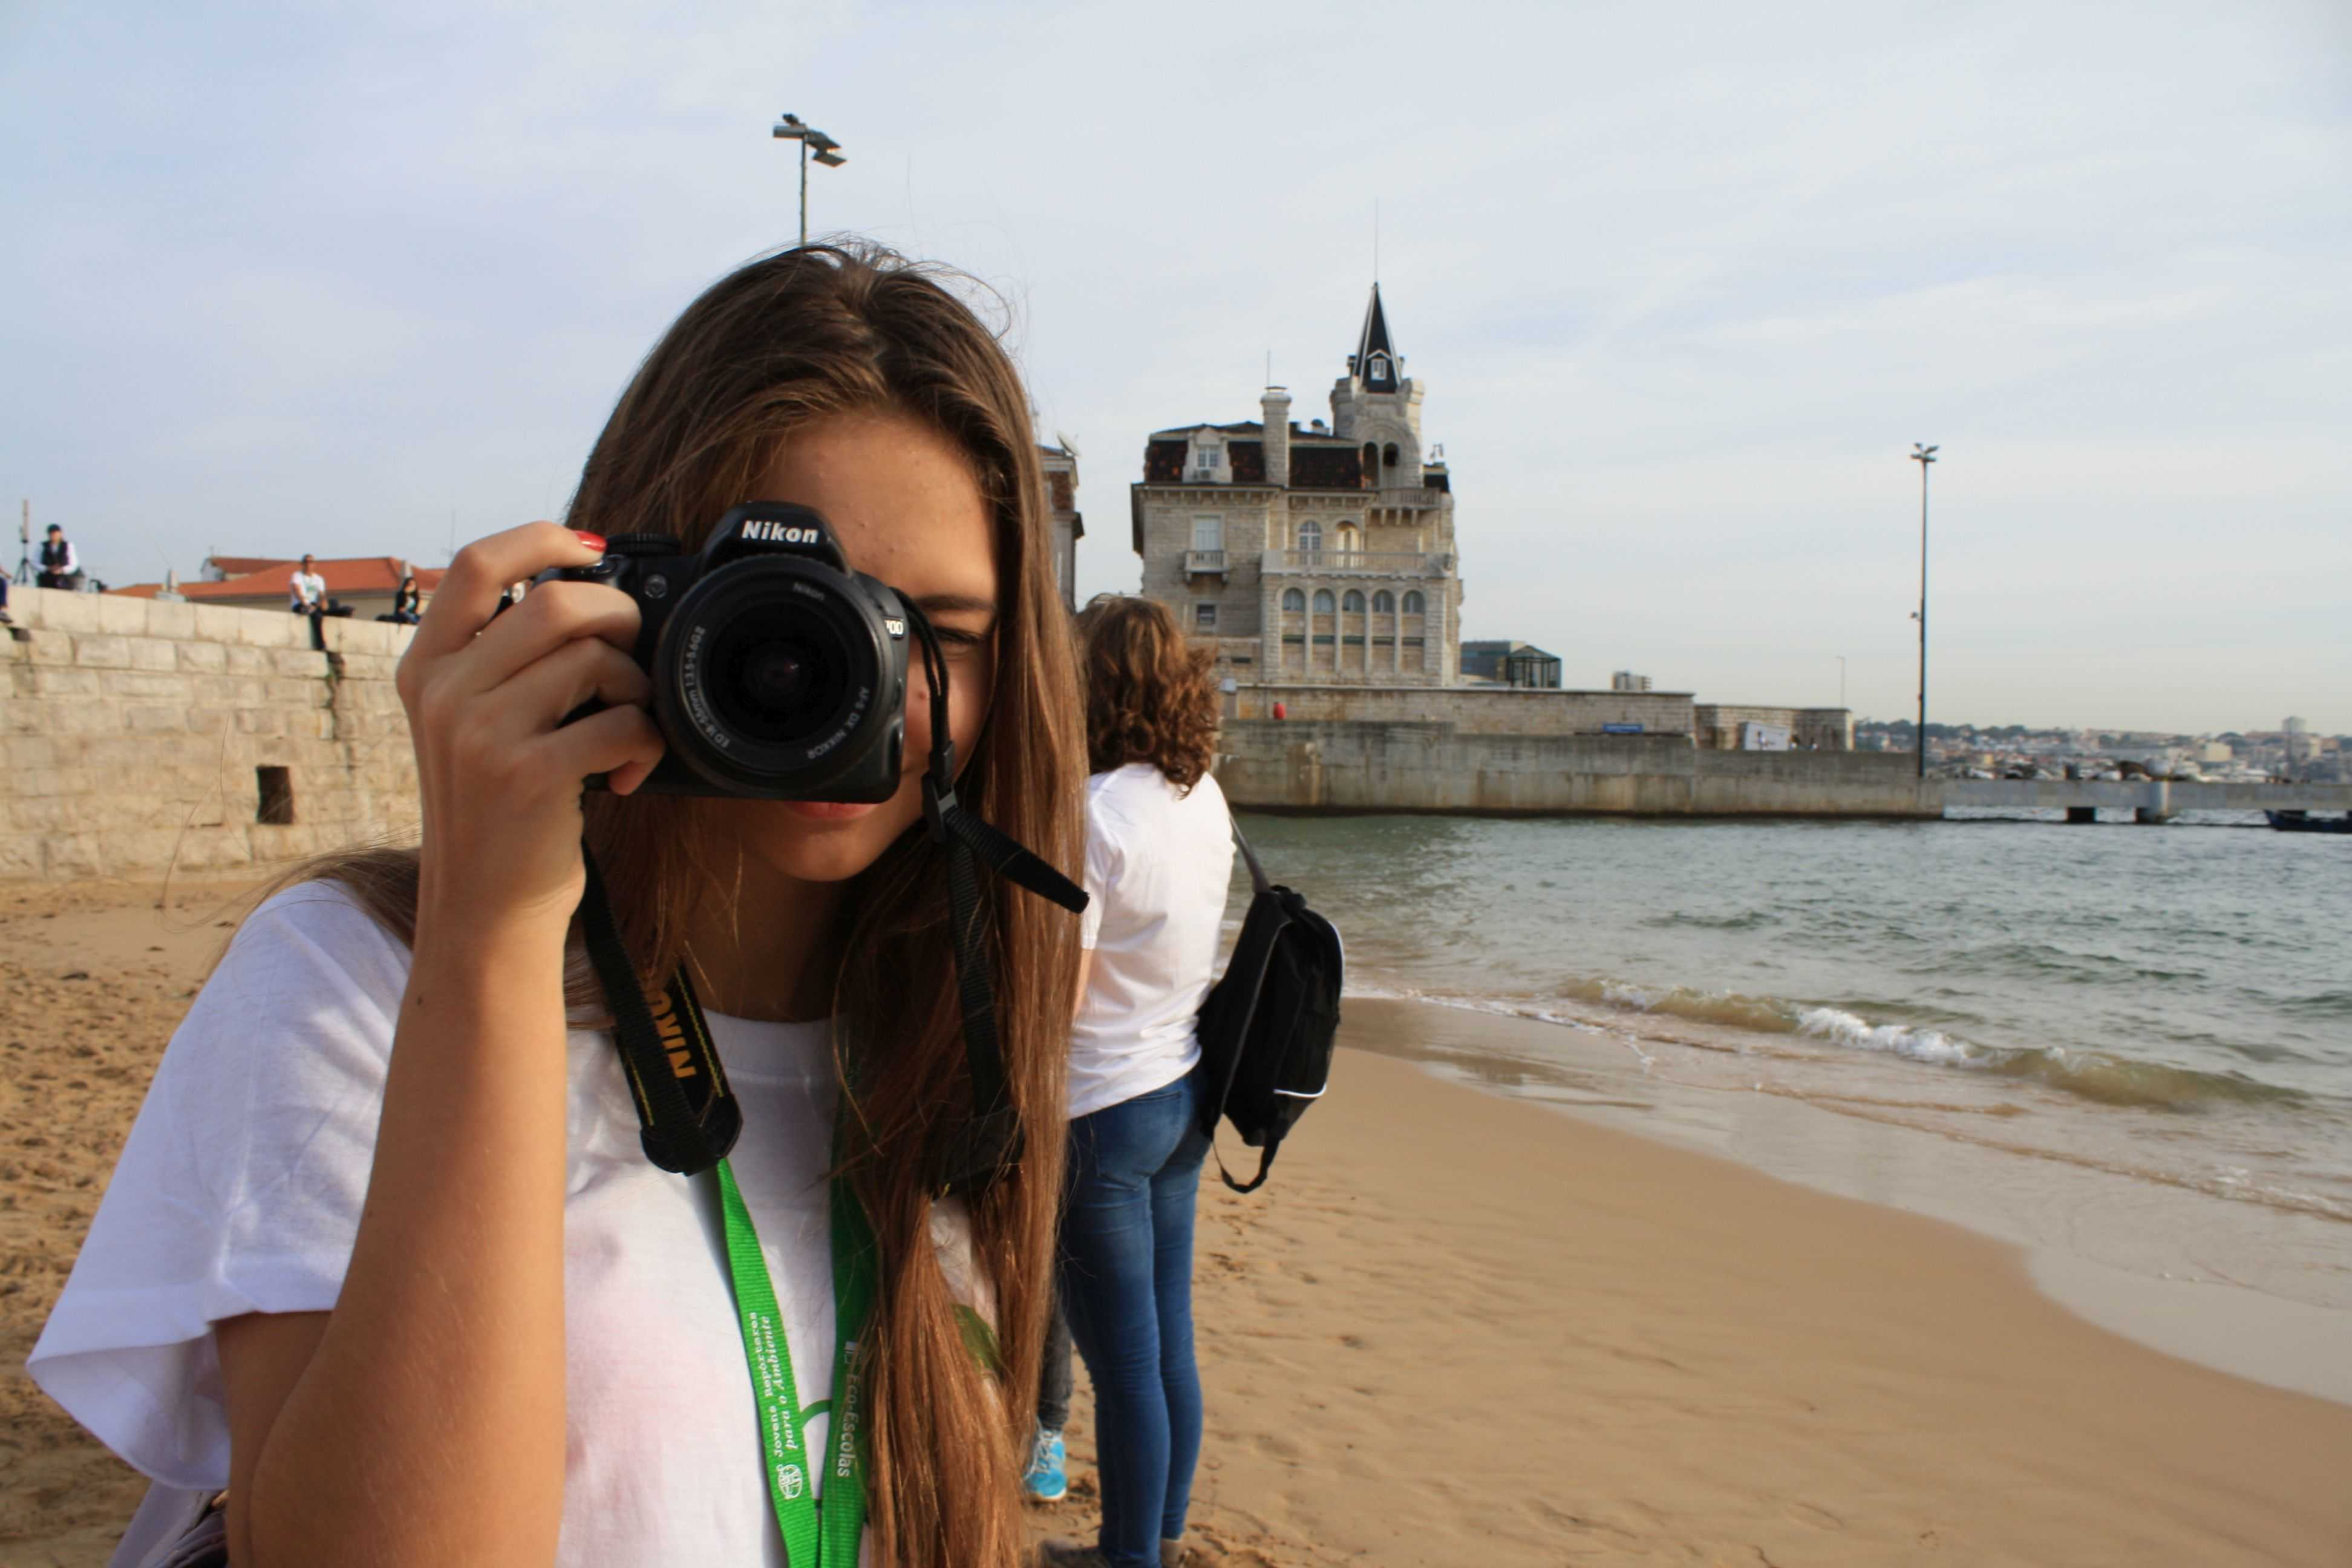 PARTENARIAT AVEC «YOUNG REPORTERS FOR THE ENVIRONMENT»